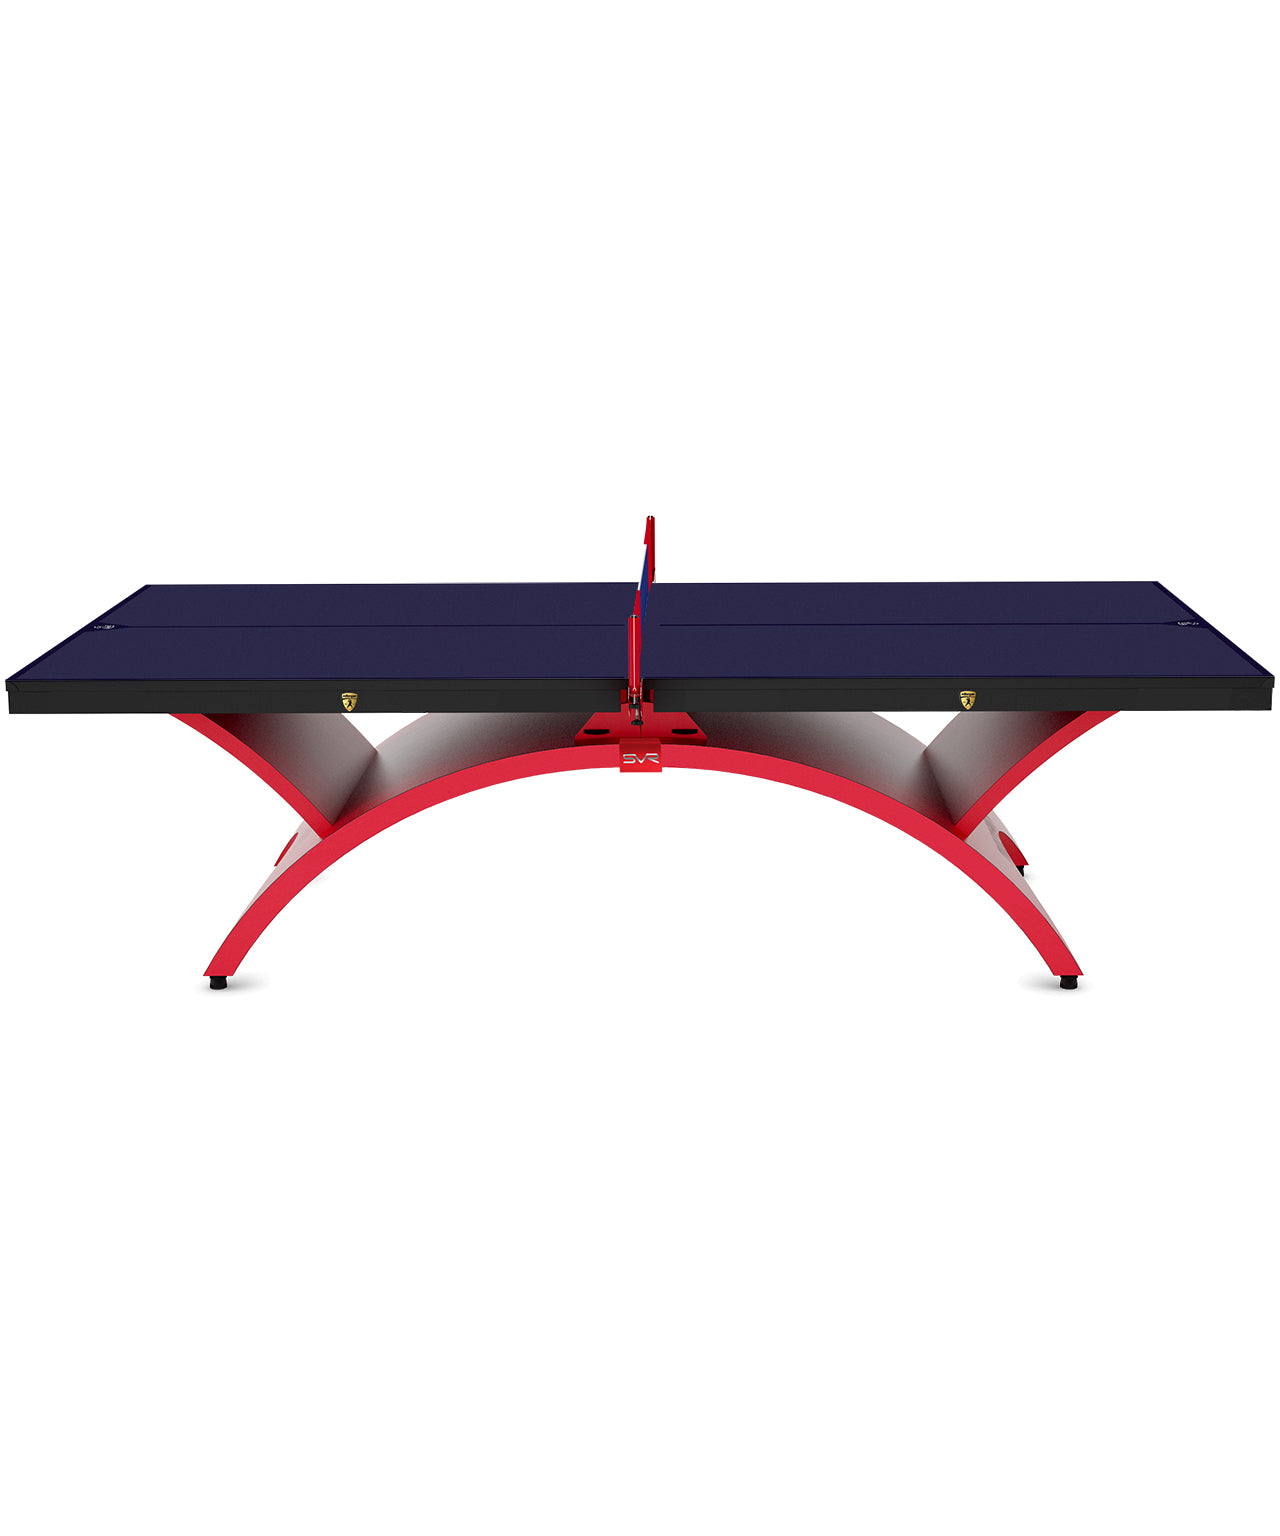 Killerspin Revolution SVR Table Tennis Table Red1 Arch